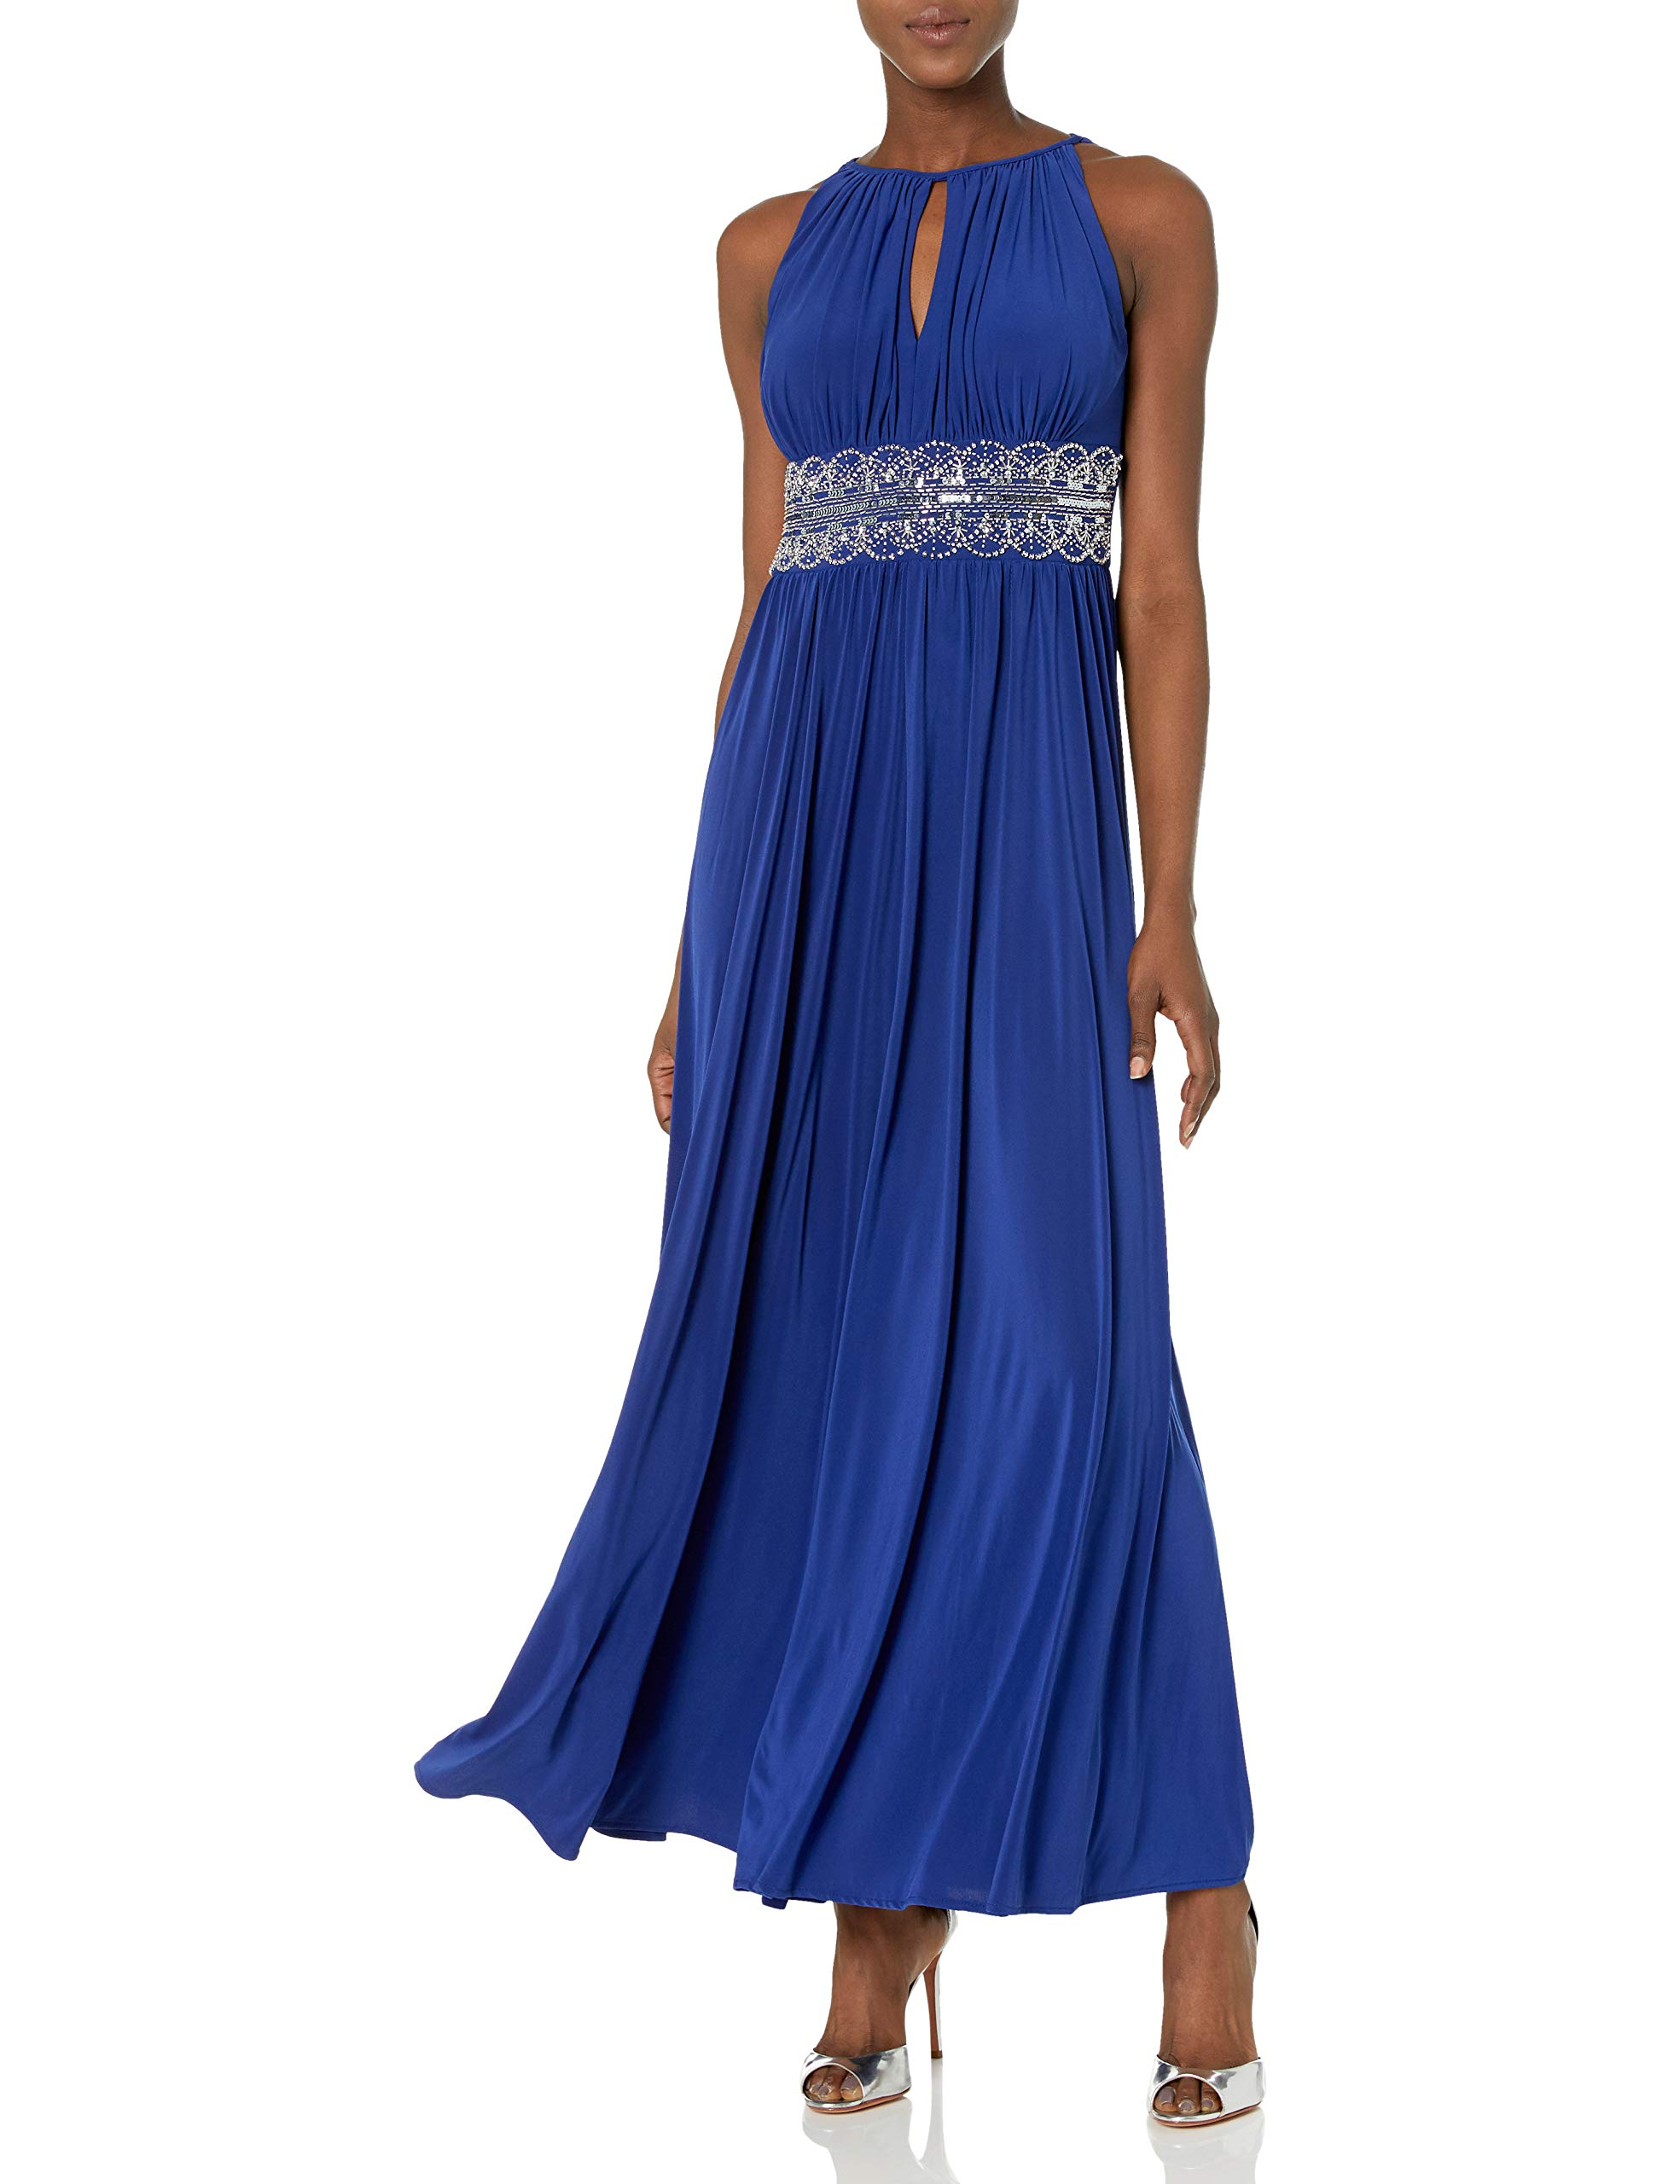 Available at Amazon: R&M Richards Women's Halter Gown with Beaded Waist